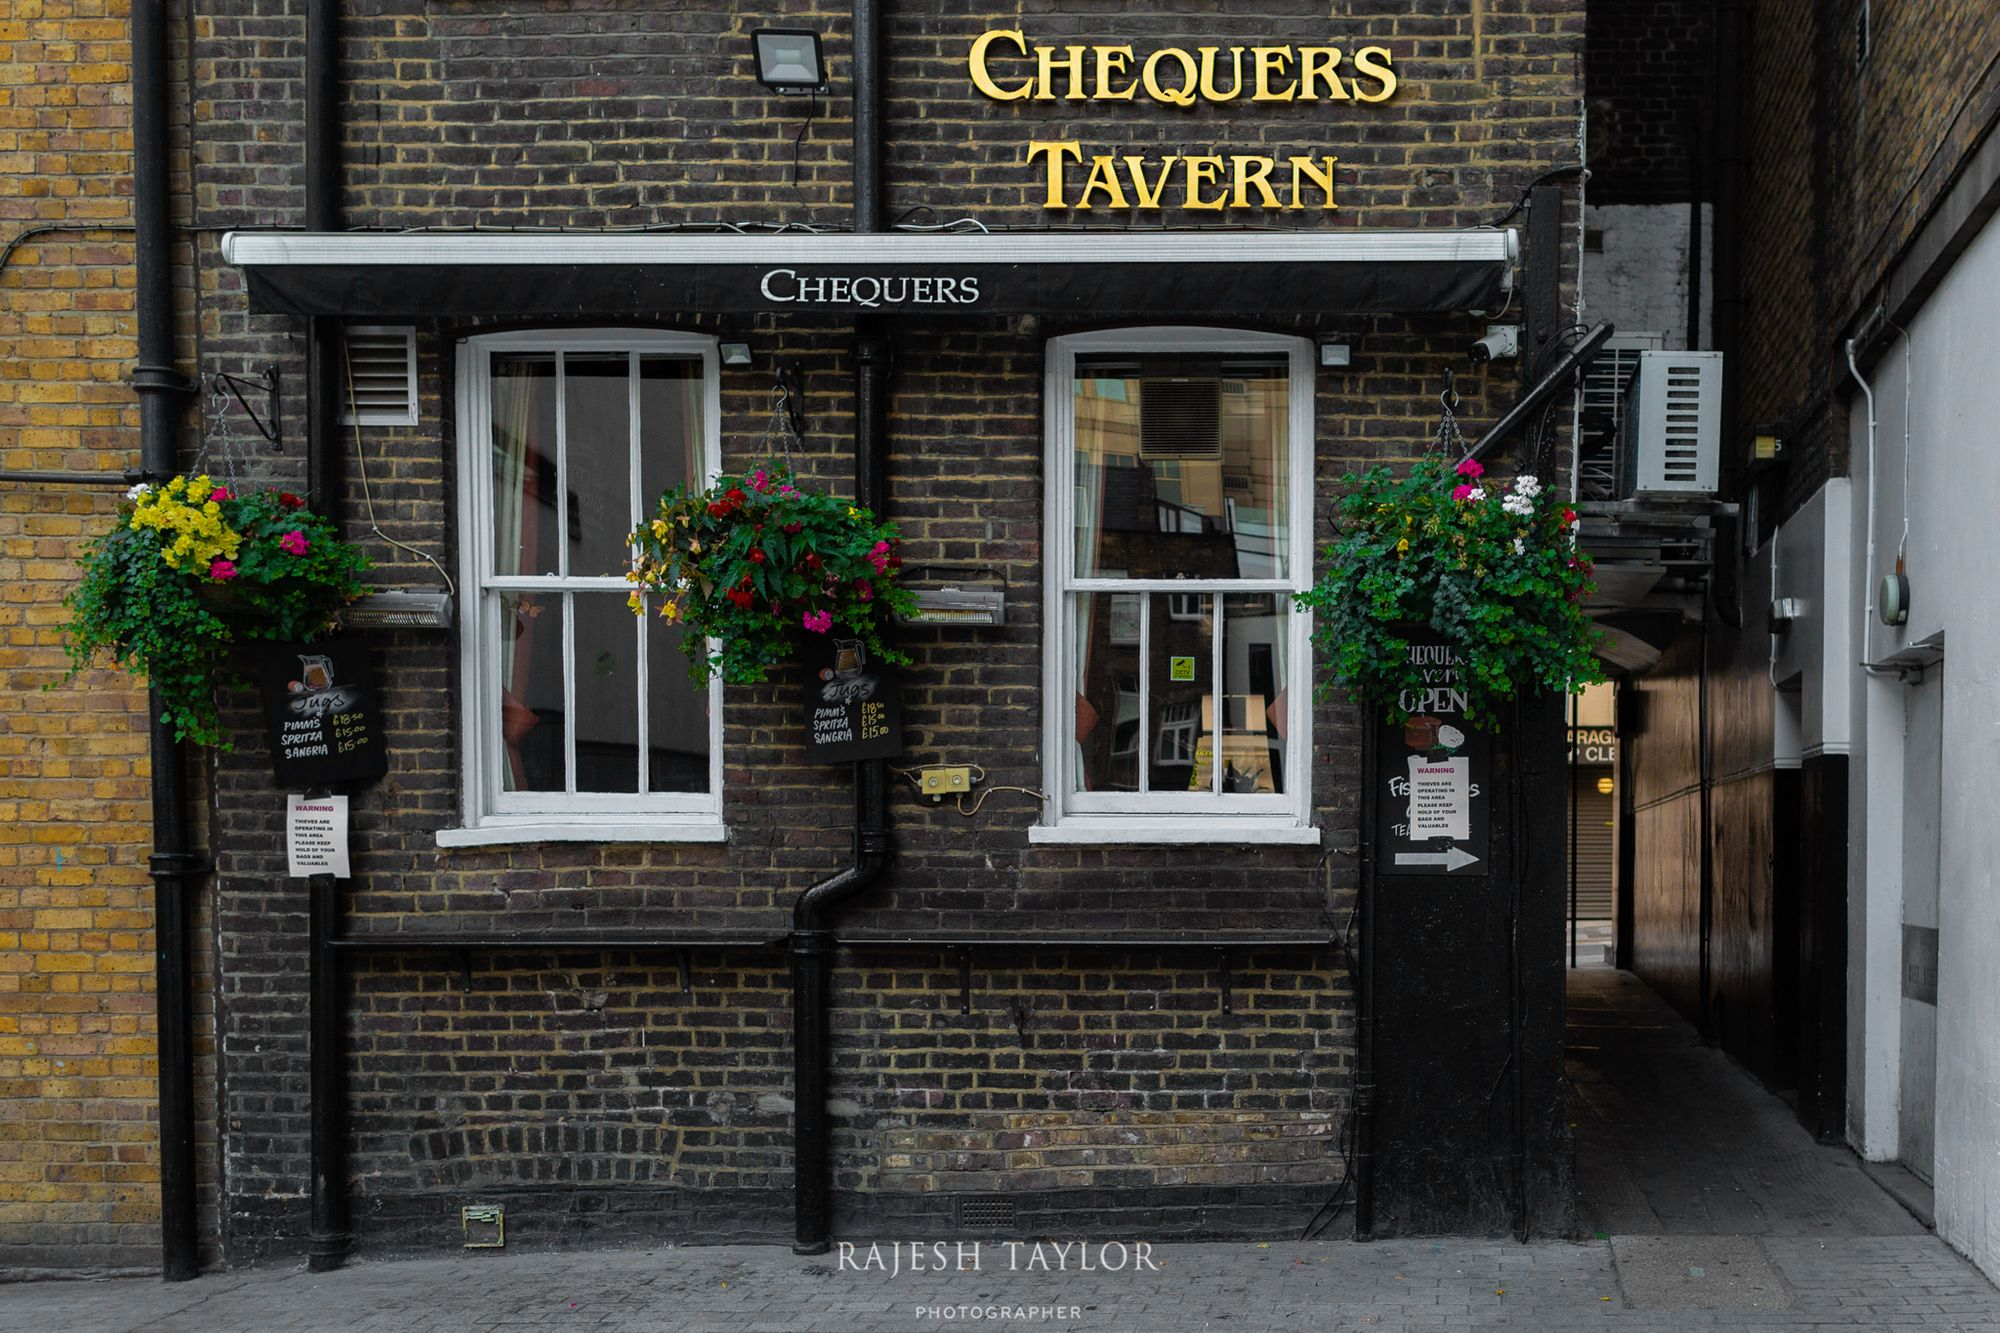 Rear of Chequers Tavern from Mason's Yard © Rajesh Taylor